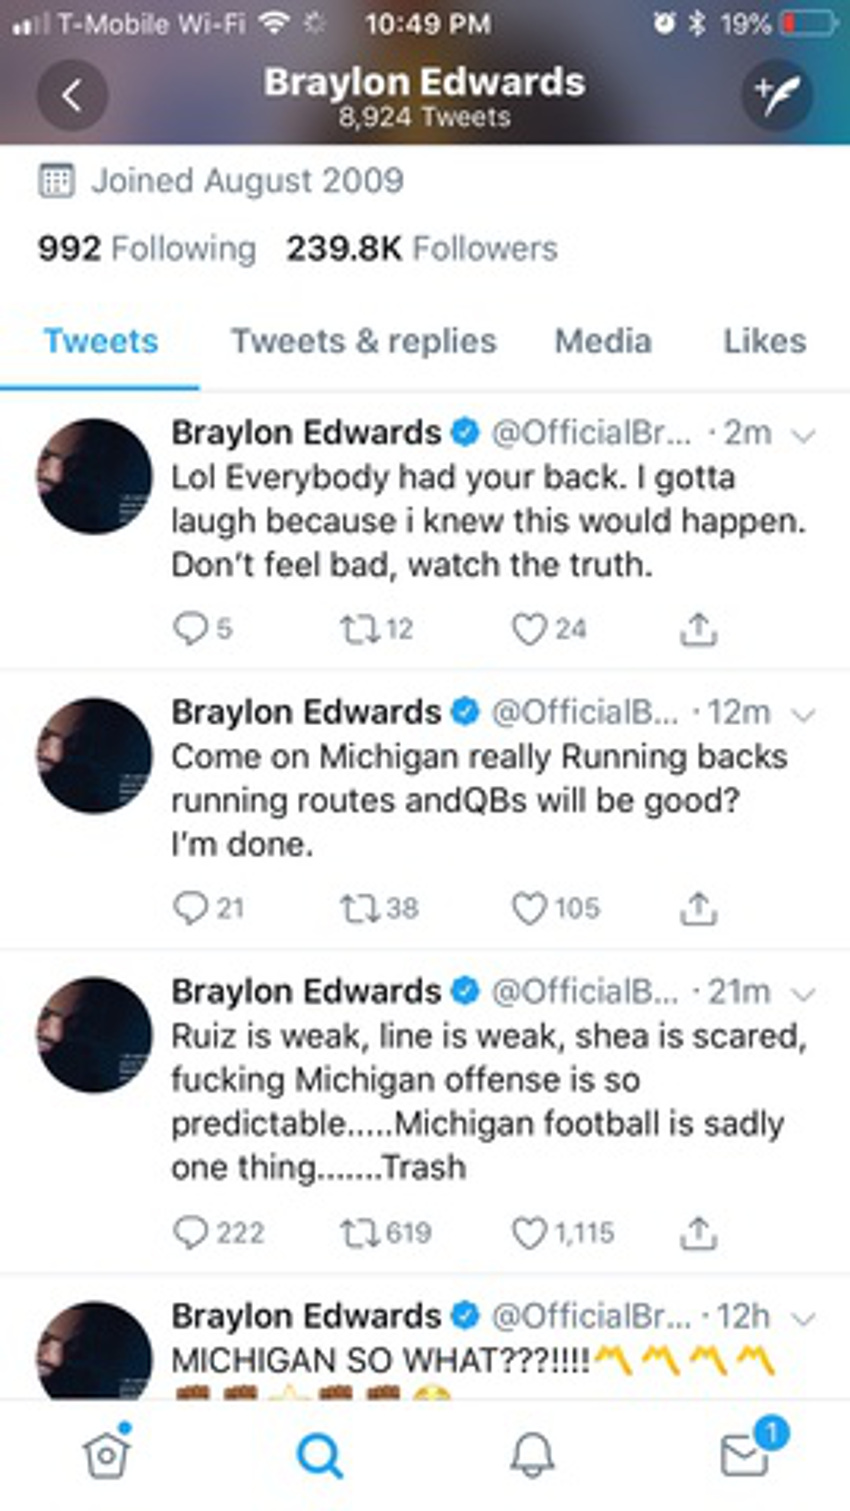 Braylon Edwards' since-deleted tweets.